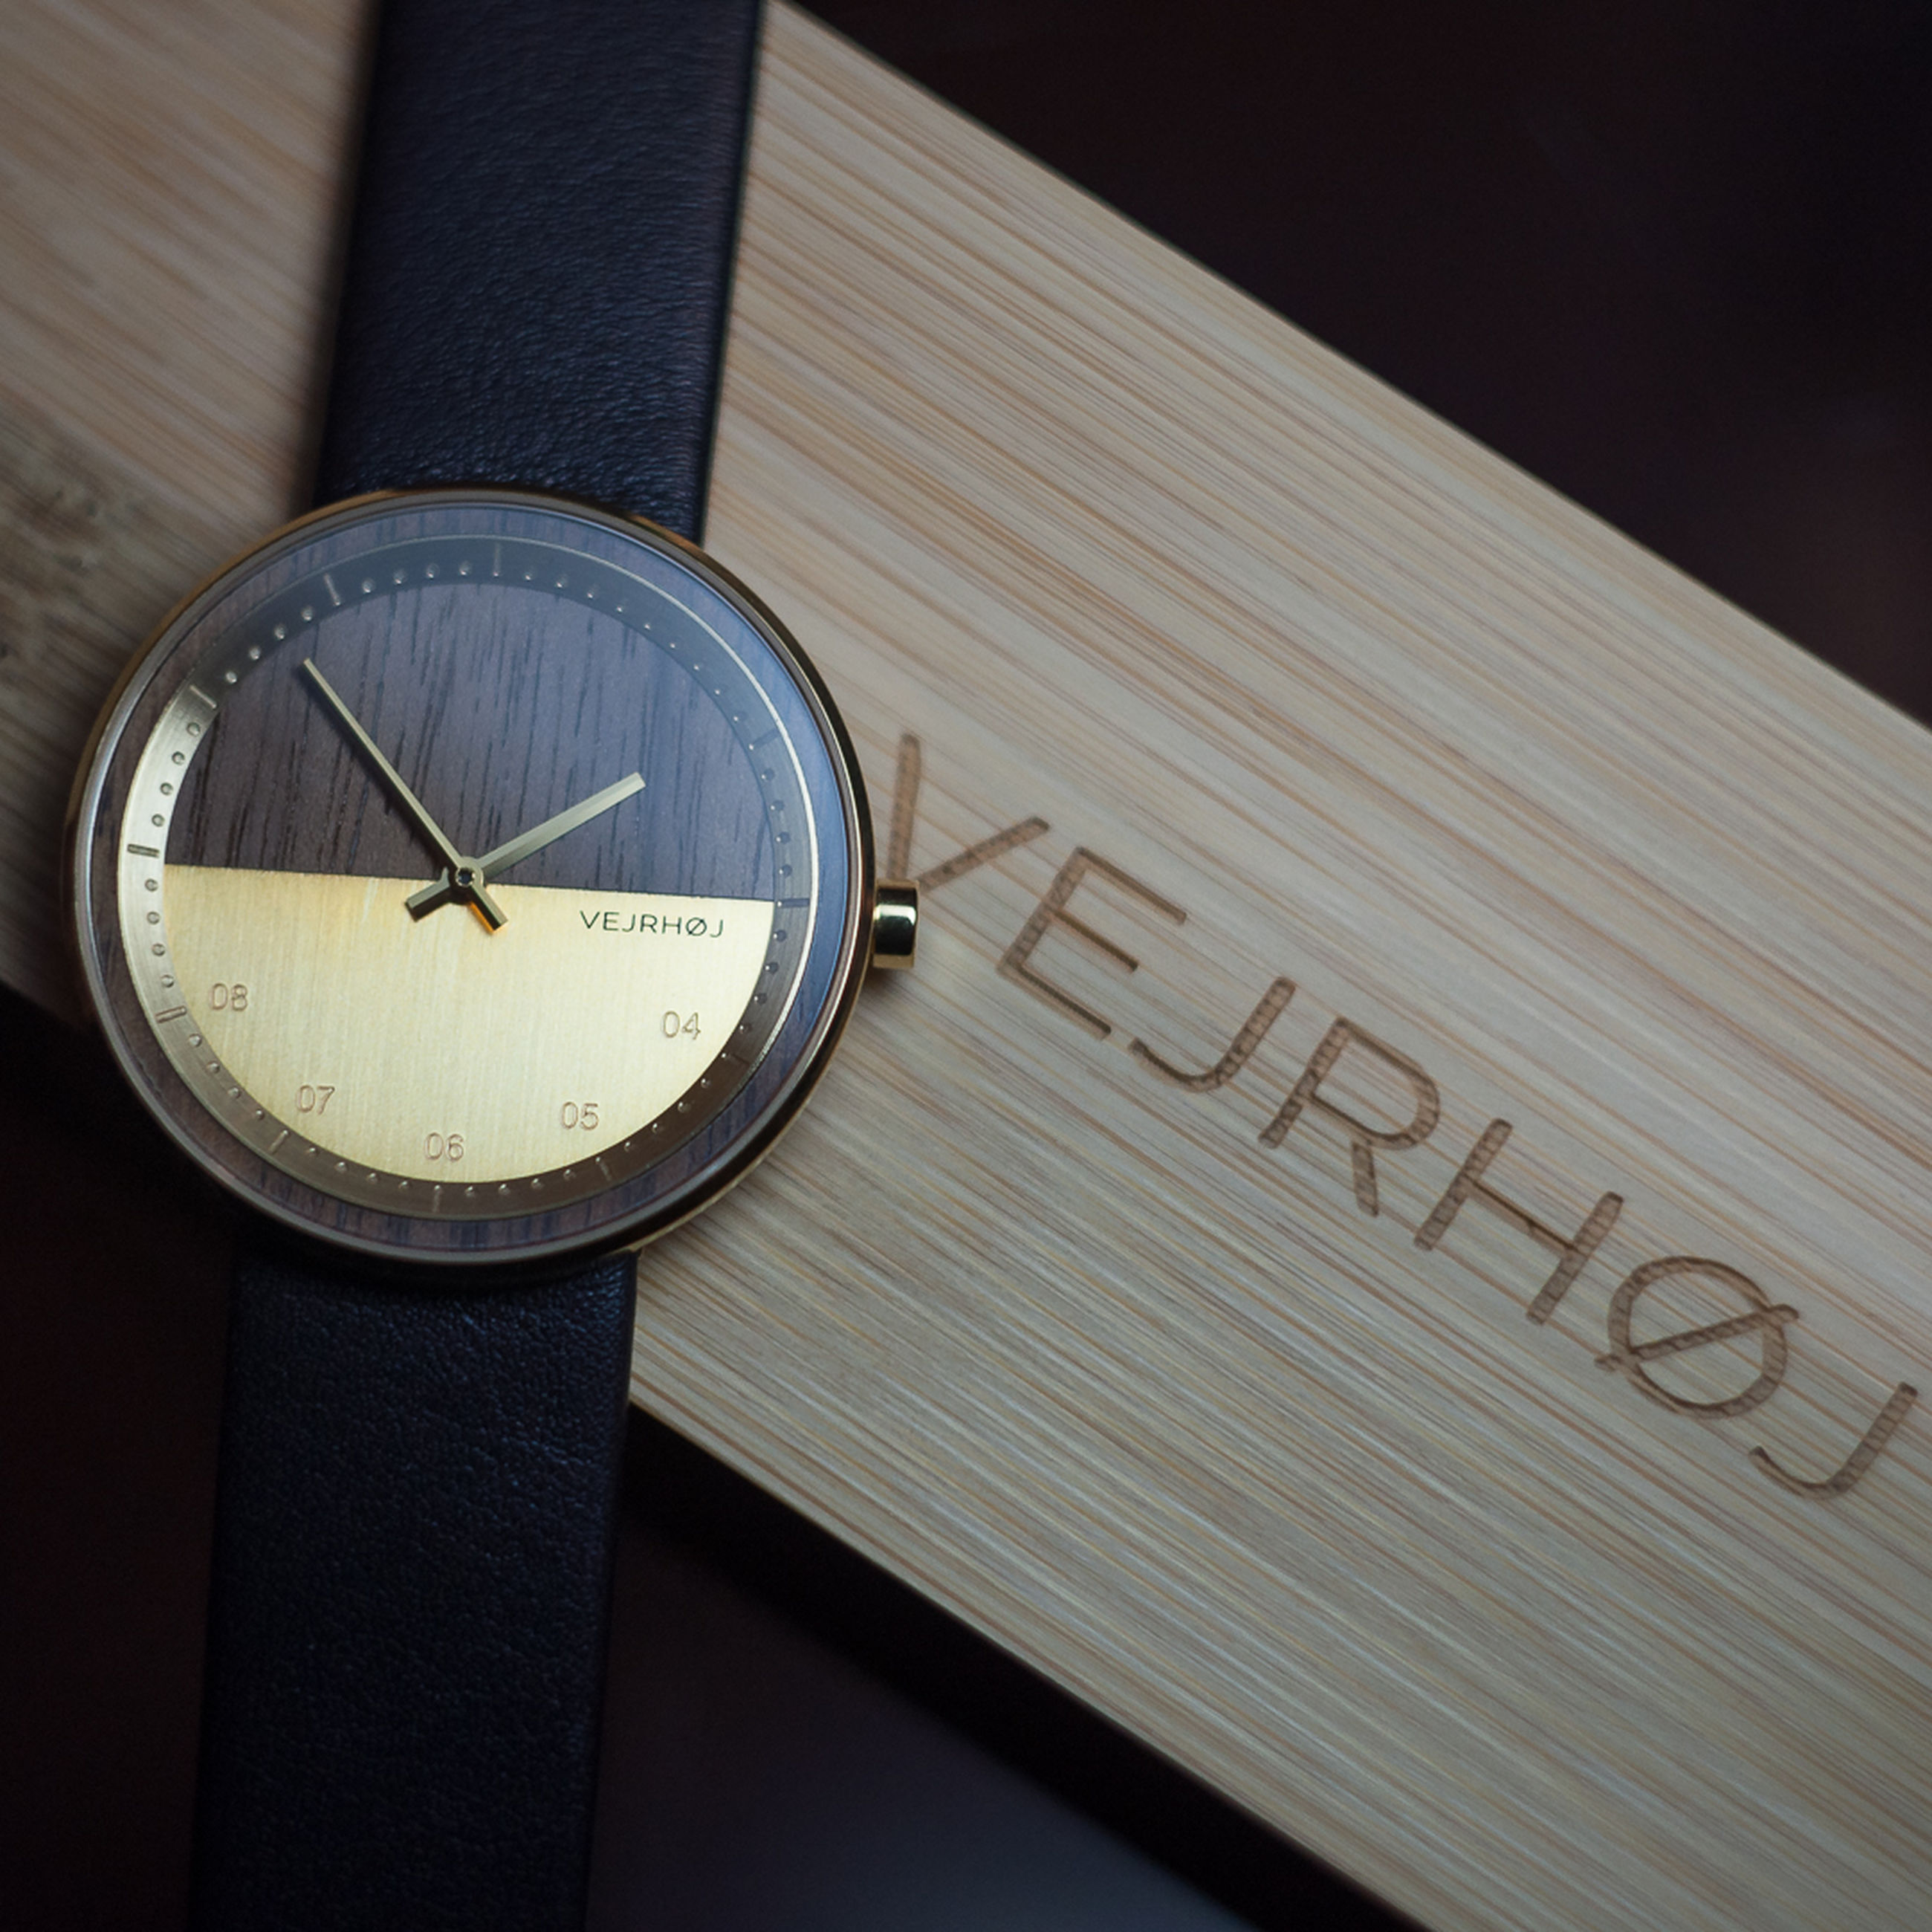 text, communication, indoors, western script, no people, table, time, close-up, still life, number, clock, high angle view, sign, publication, book, information, accuracy, wood - material, technology, personal accessory, message